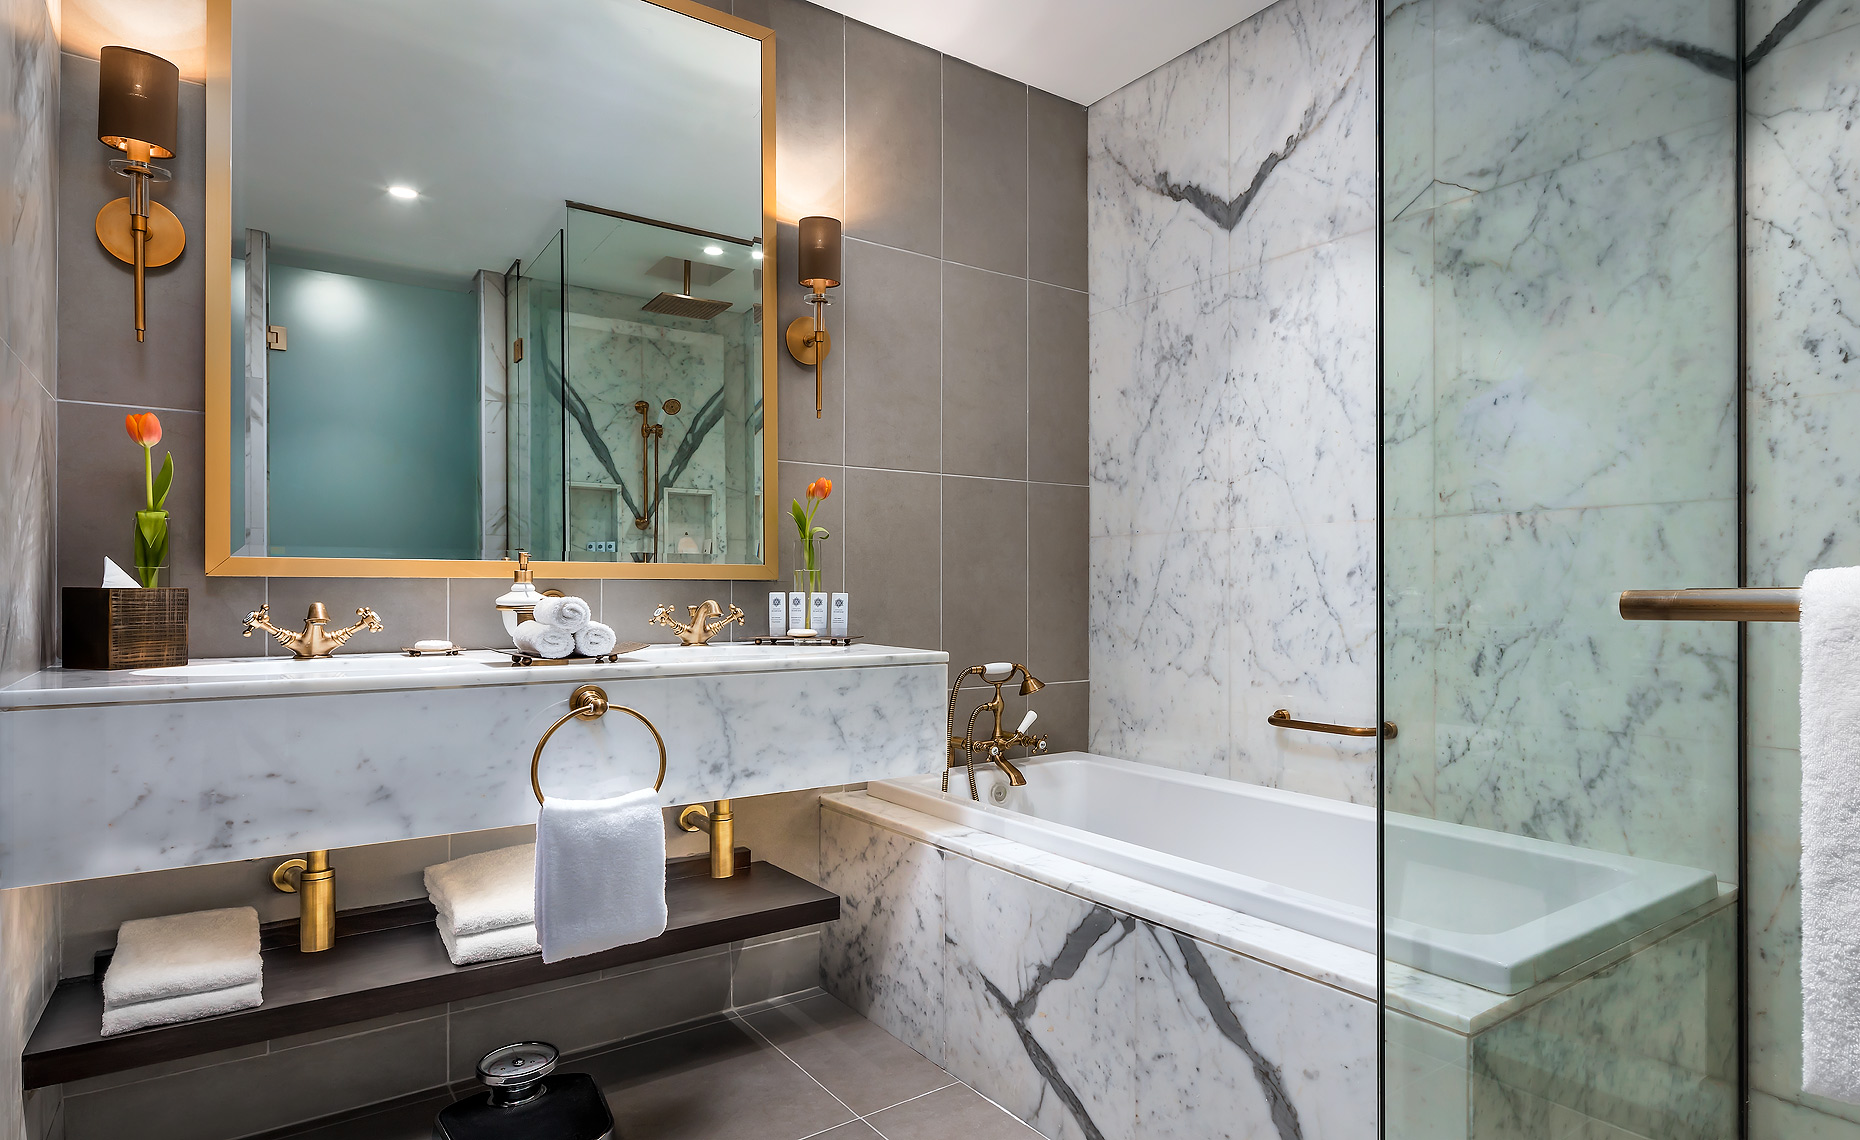 St. Regis Polo Club Hotel Dubai Bathroom - Hotel Photography